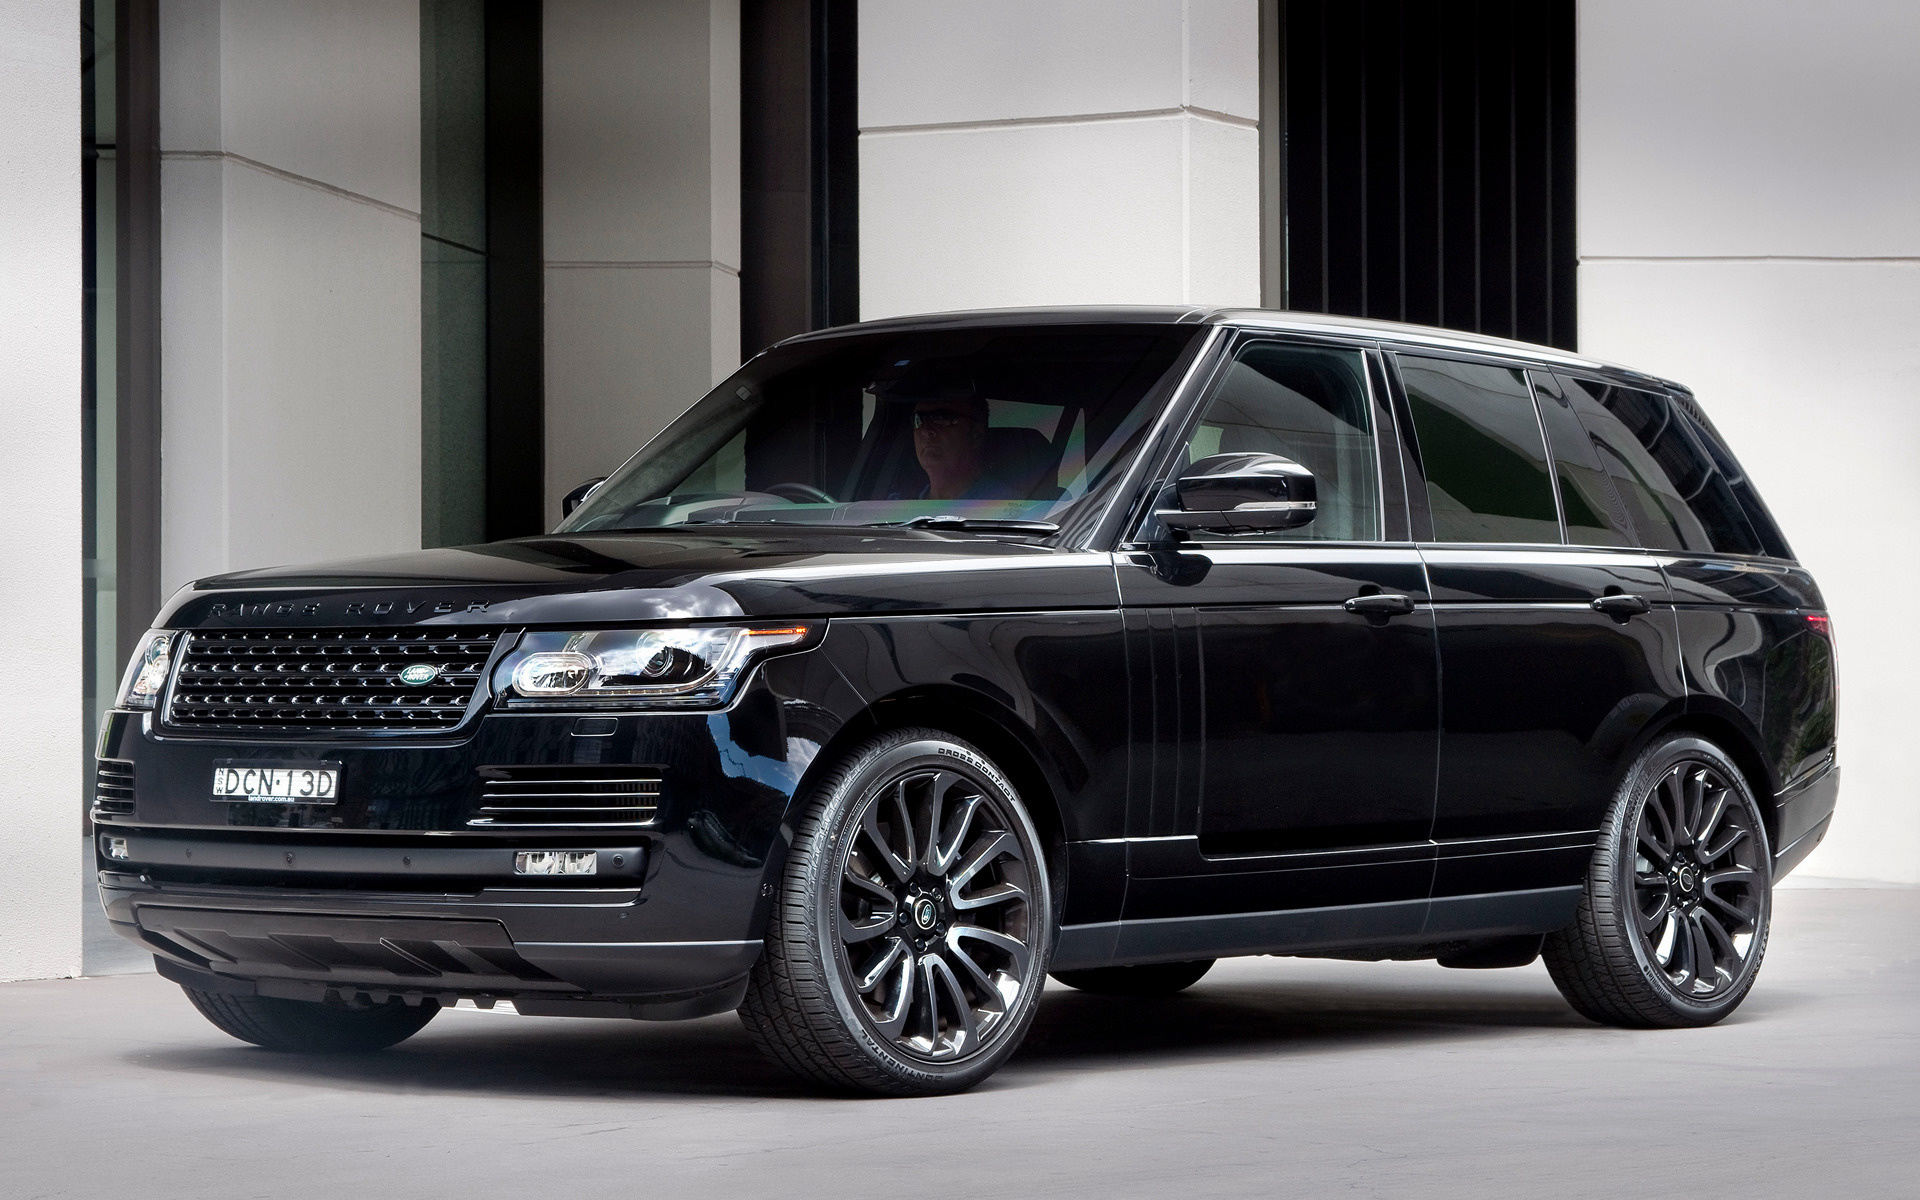 2013 Range Rover Vogue Se Black Design Pack Au